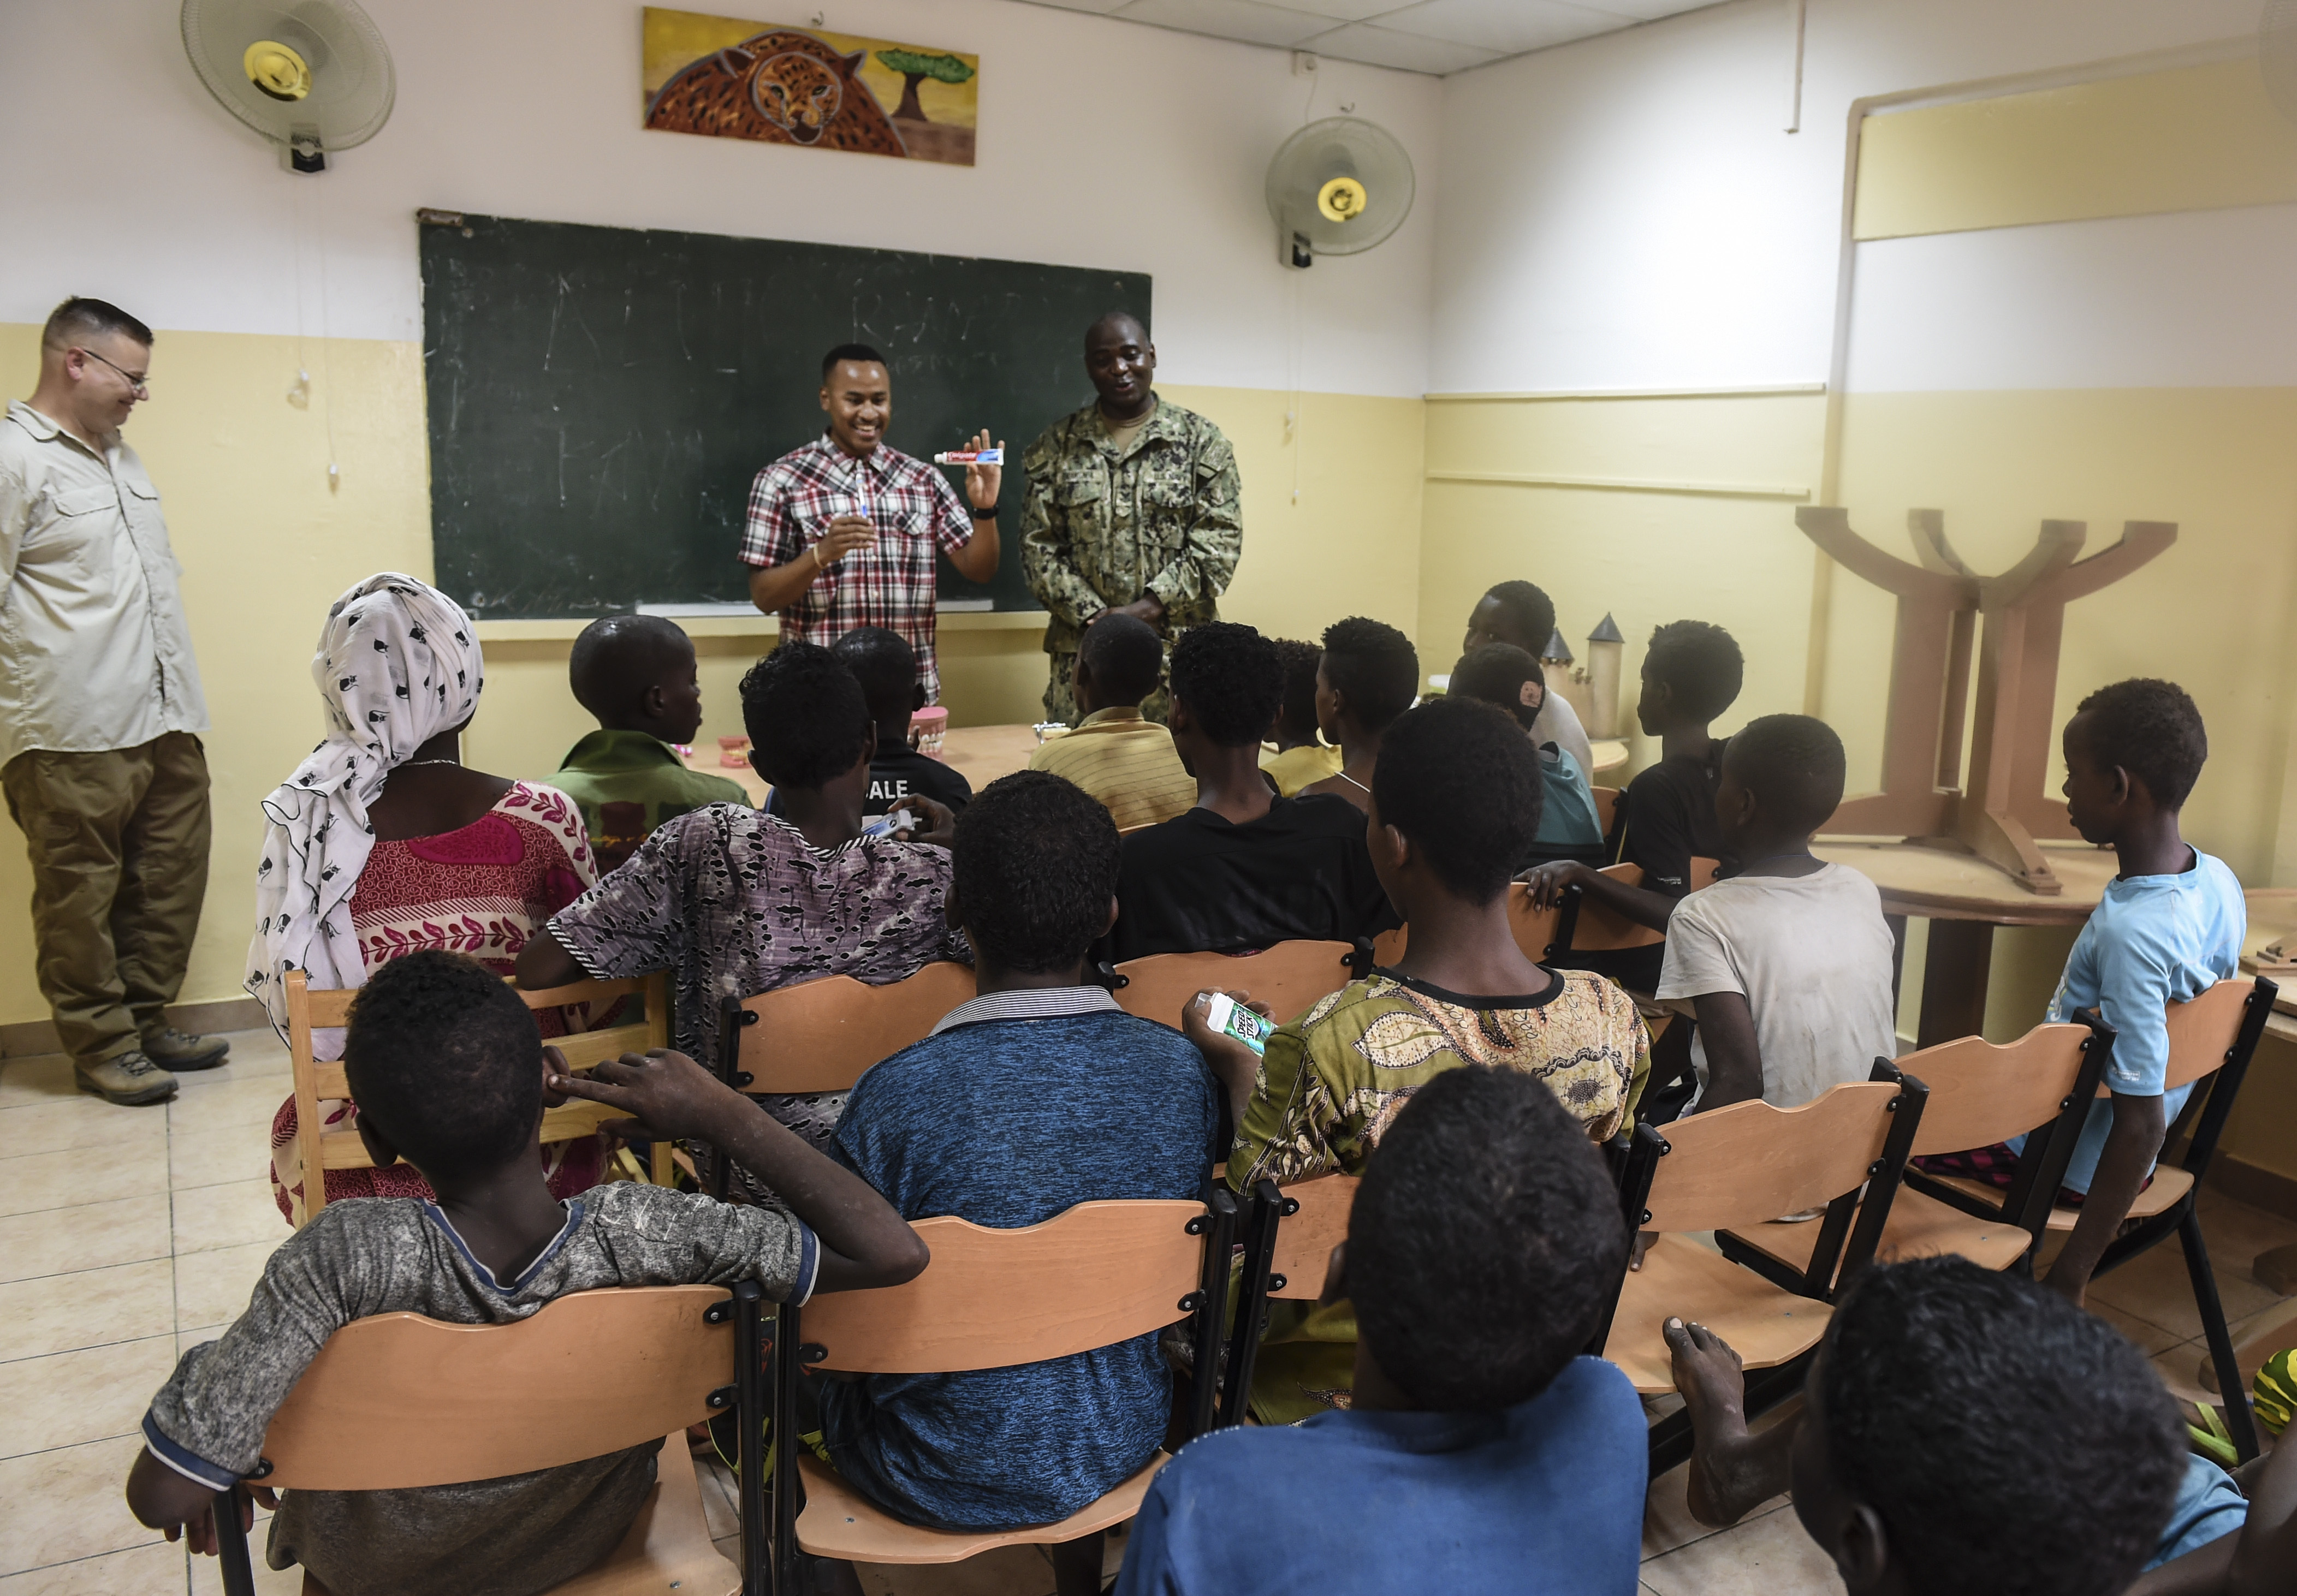 U.S. Army SGT Justin Wallace, a dental specialist with the 443rd Civil Affairs Battalion functional specialty team, shows children a tube of toothpaste during a dental demonstration in Djibouti City, Djibouti, Aug. 8, 2017. With demonstrations such as these, the team contributes to the Combined Joint Task Force-Horn of Africa's efforts to promote regional security, stability and prosperity. (U.S. Air Force photo by Staff Sgt. Eboni Prince)